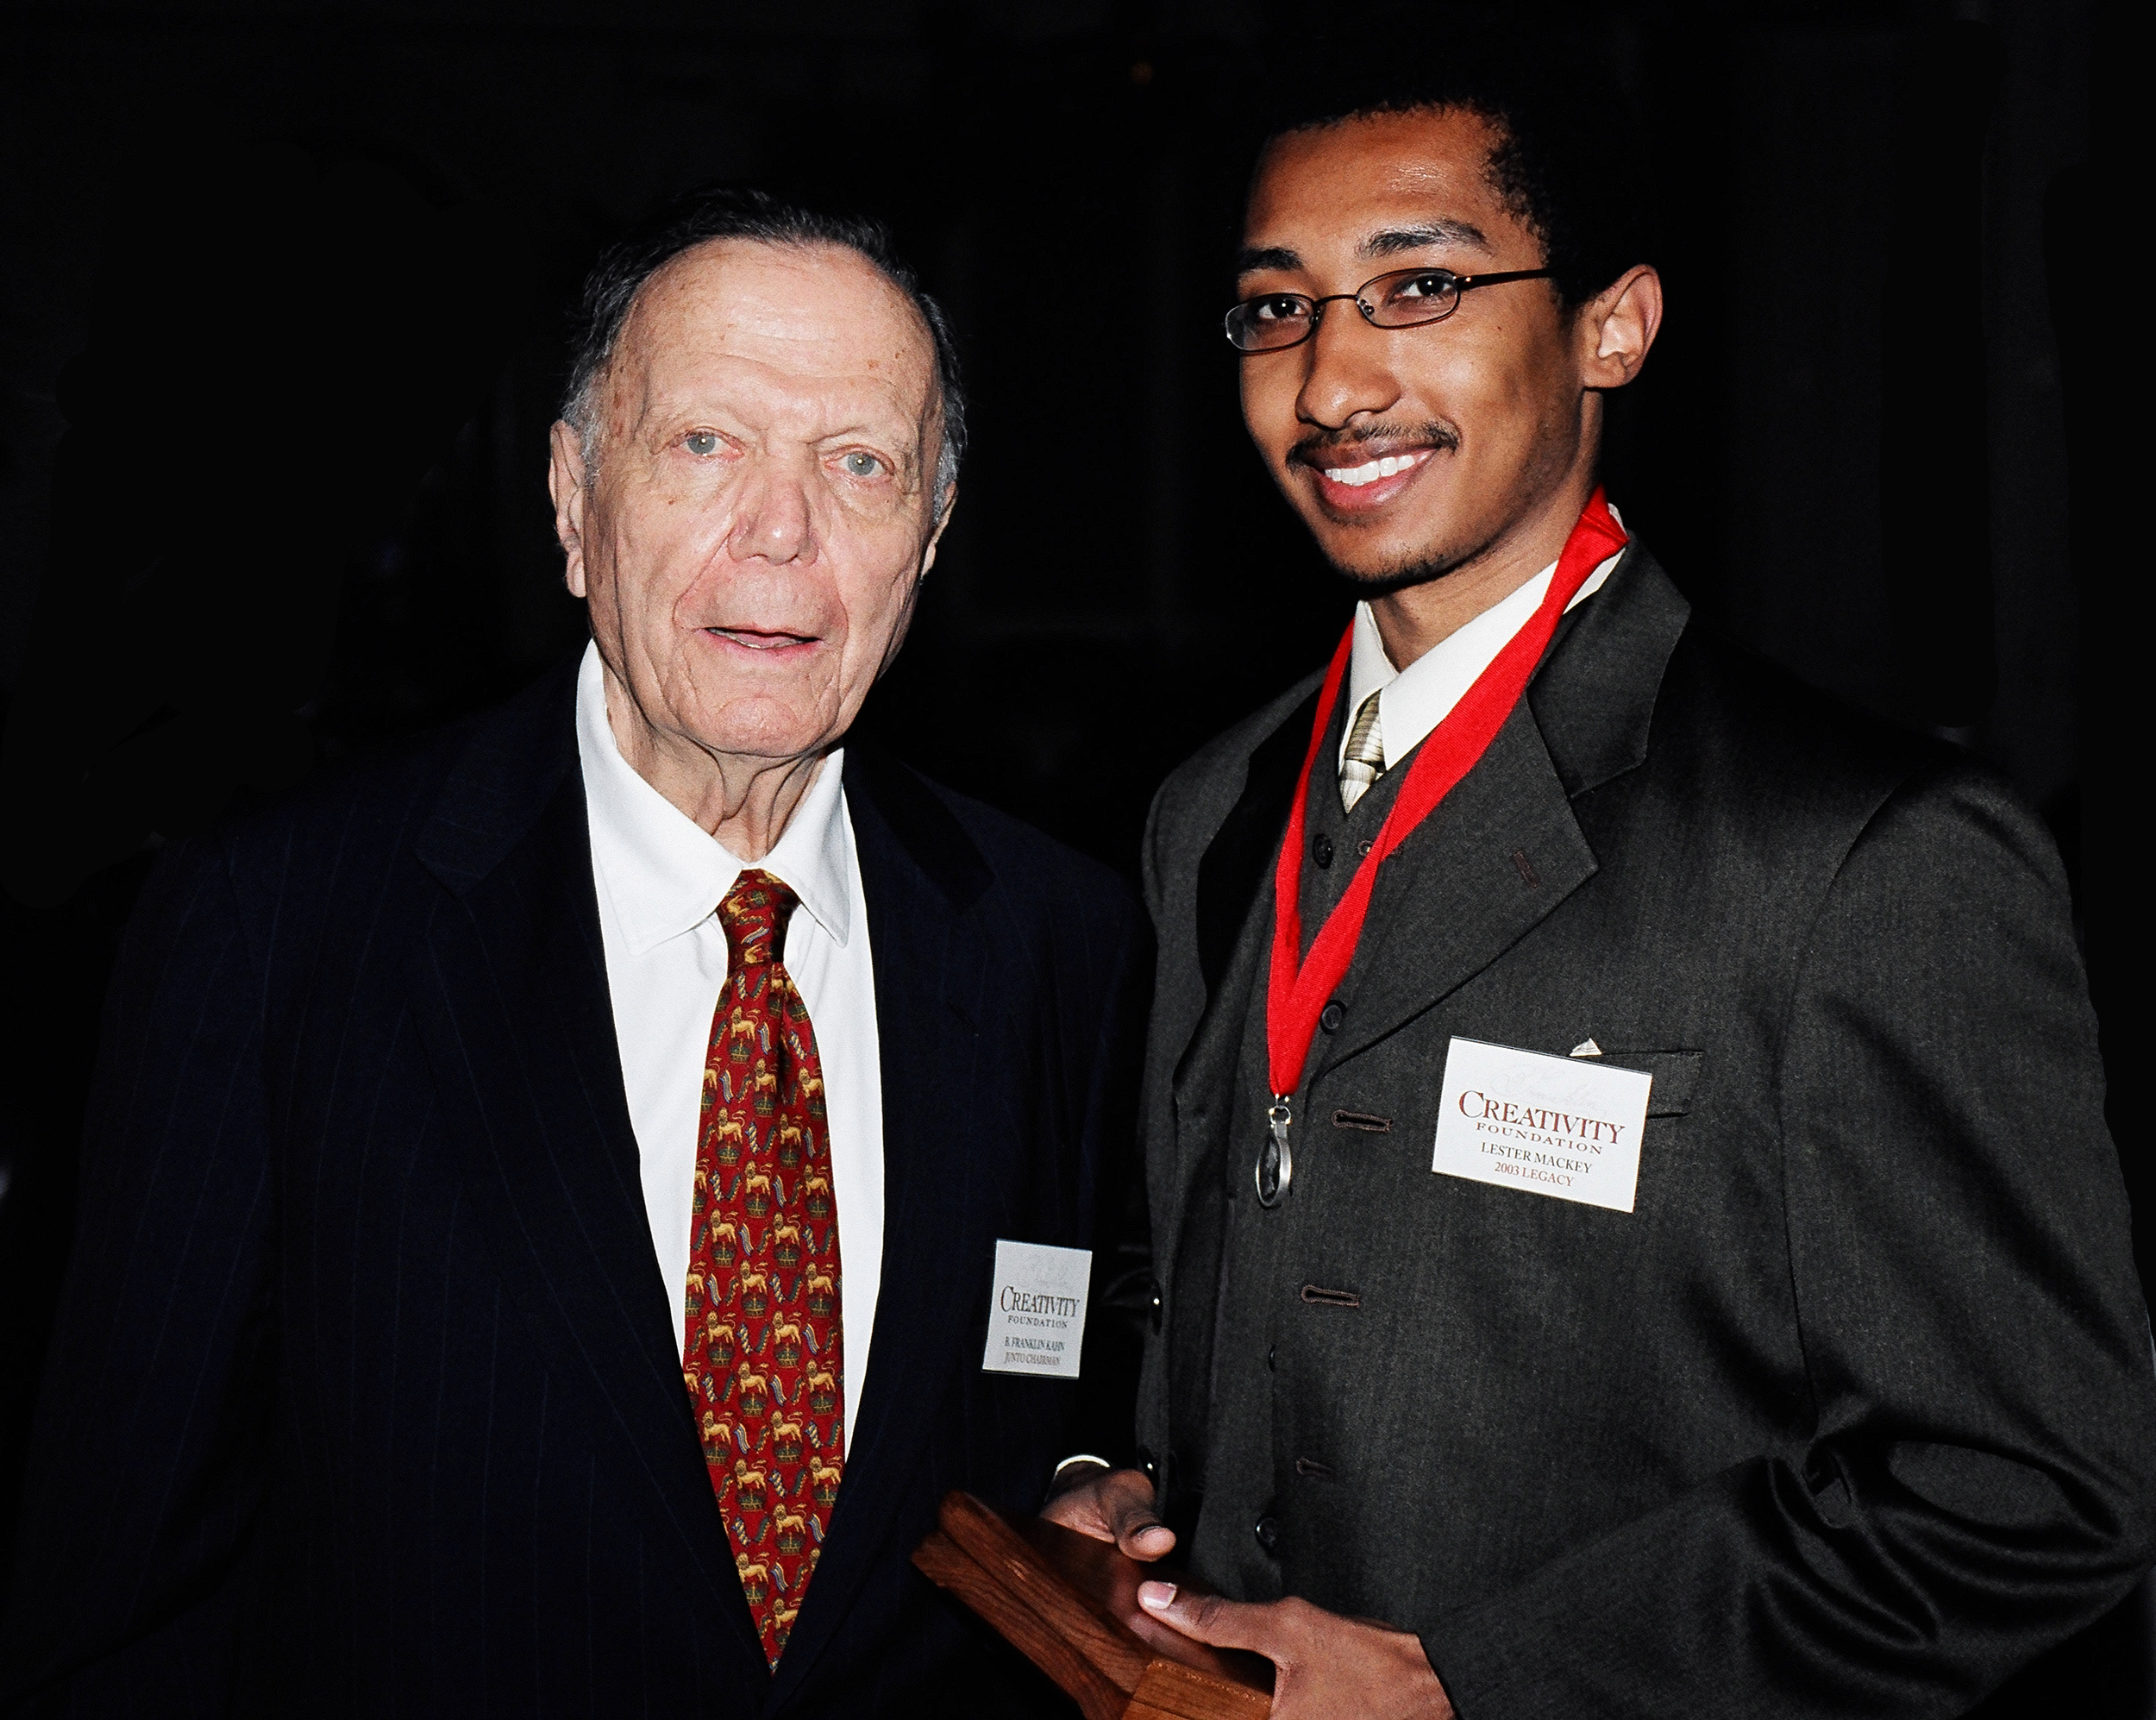 Lester Mackey with Creativity Founder B. Franklin Kahn